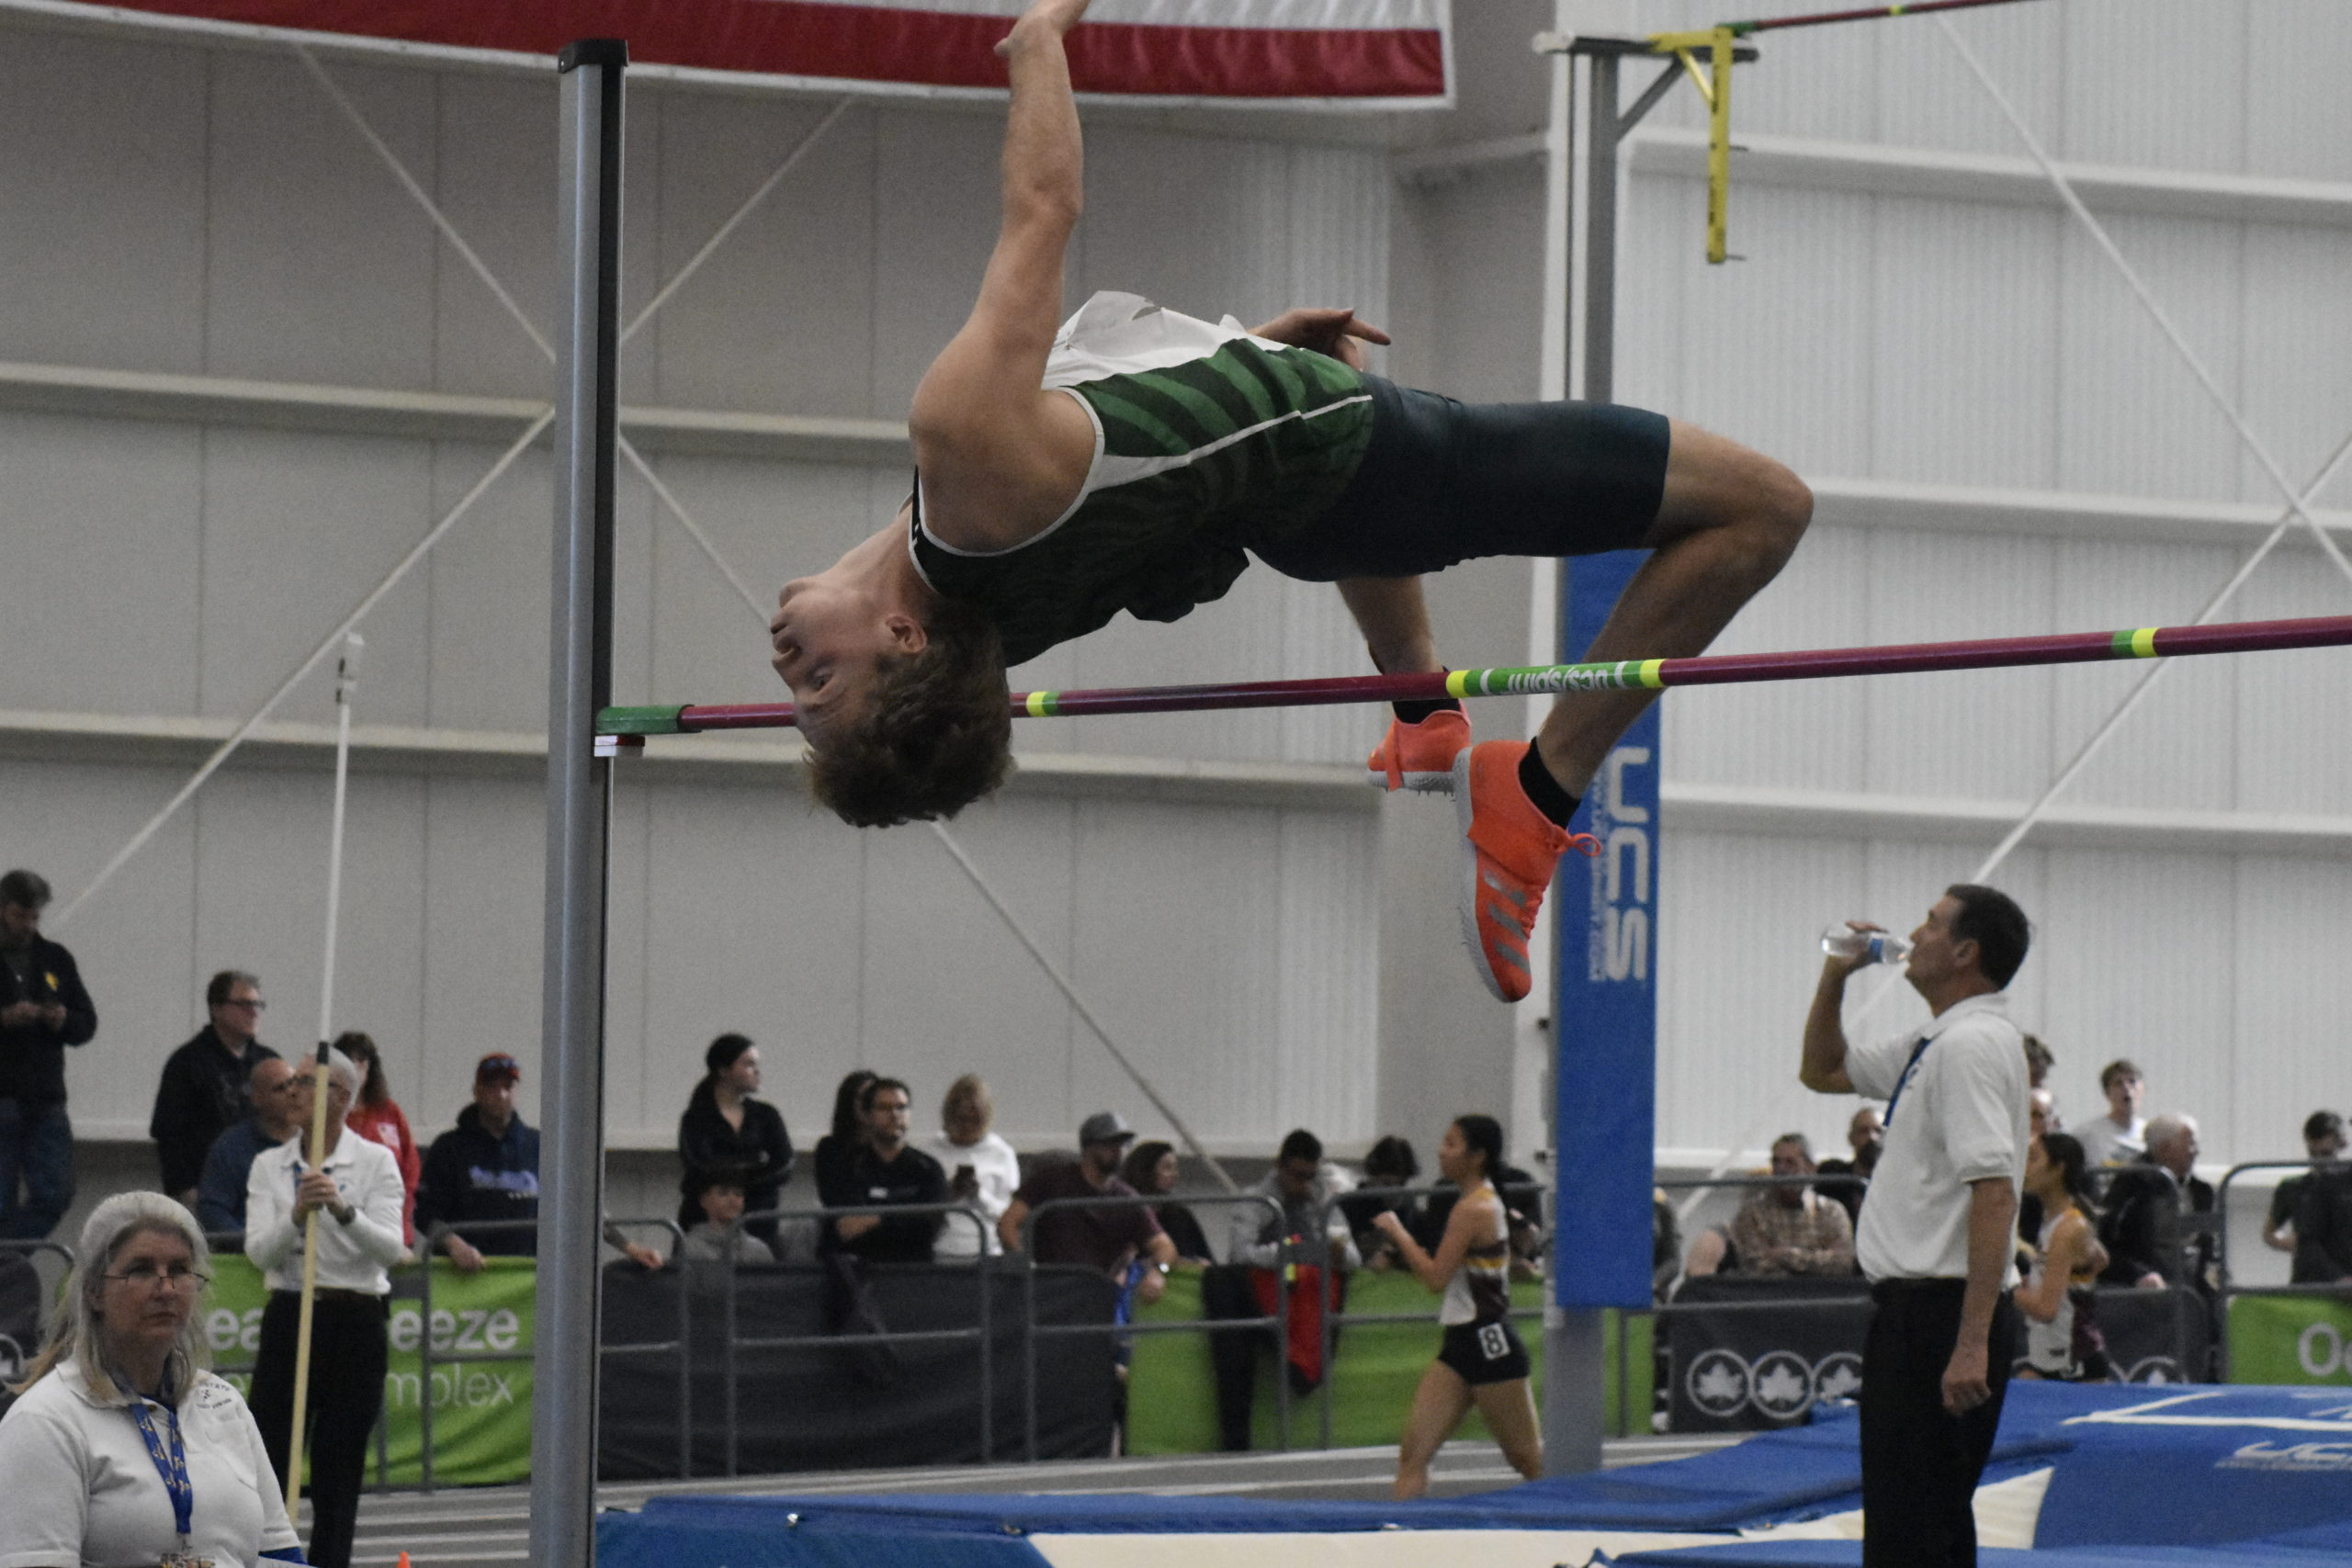 Westhampton Beach senior Jack Meigel cleared 6 feet 6 inches to place third in the state.